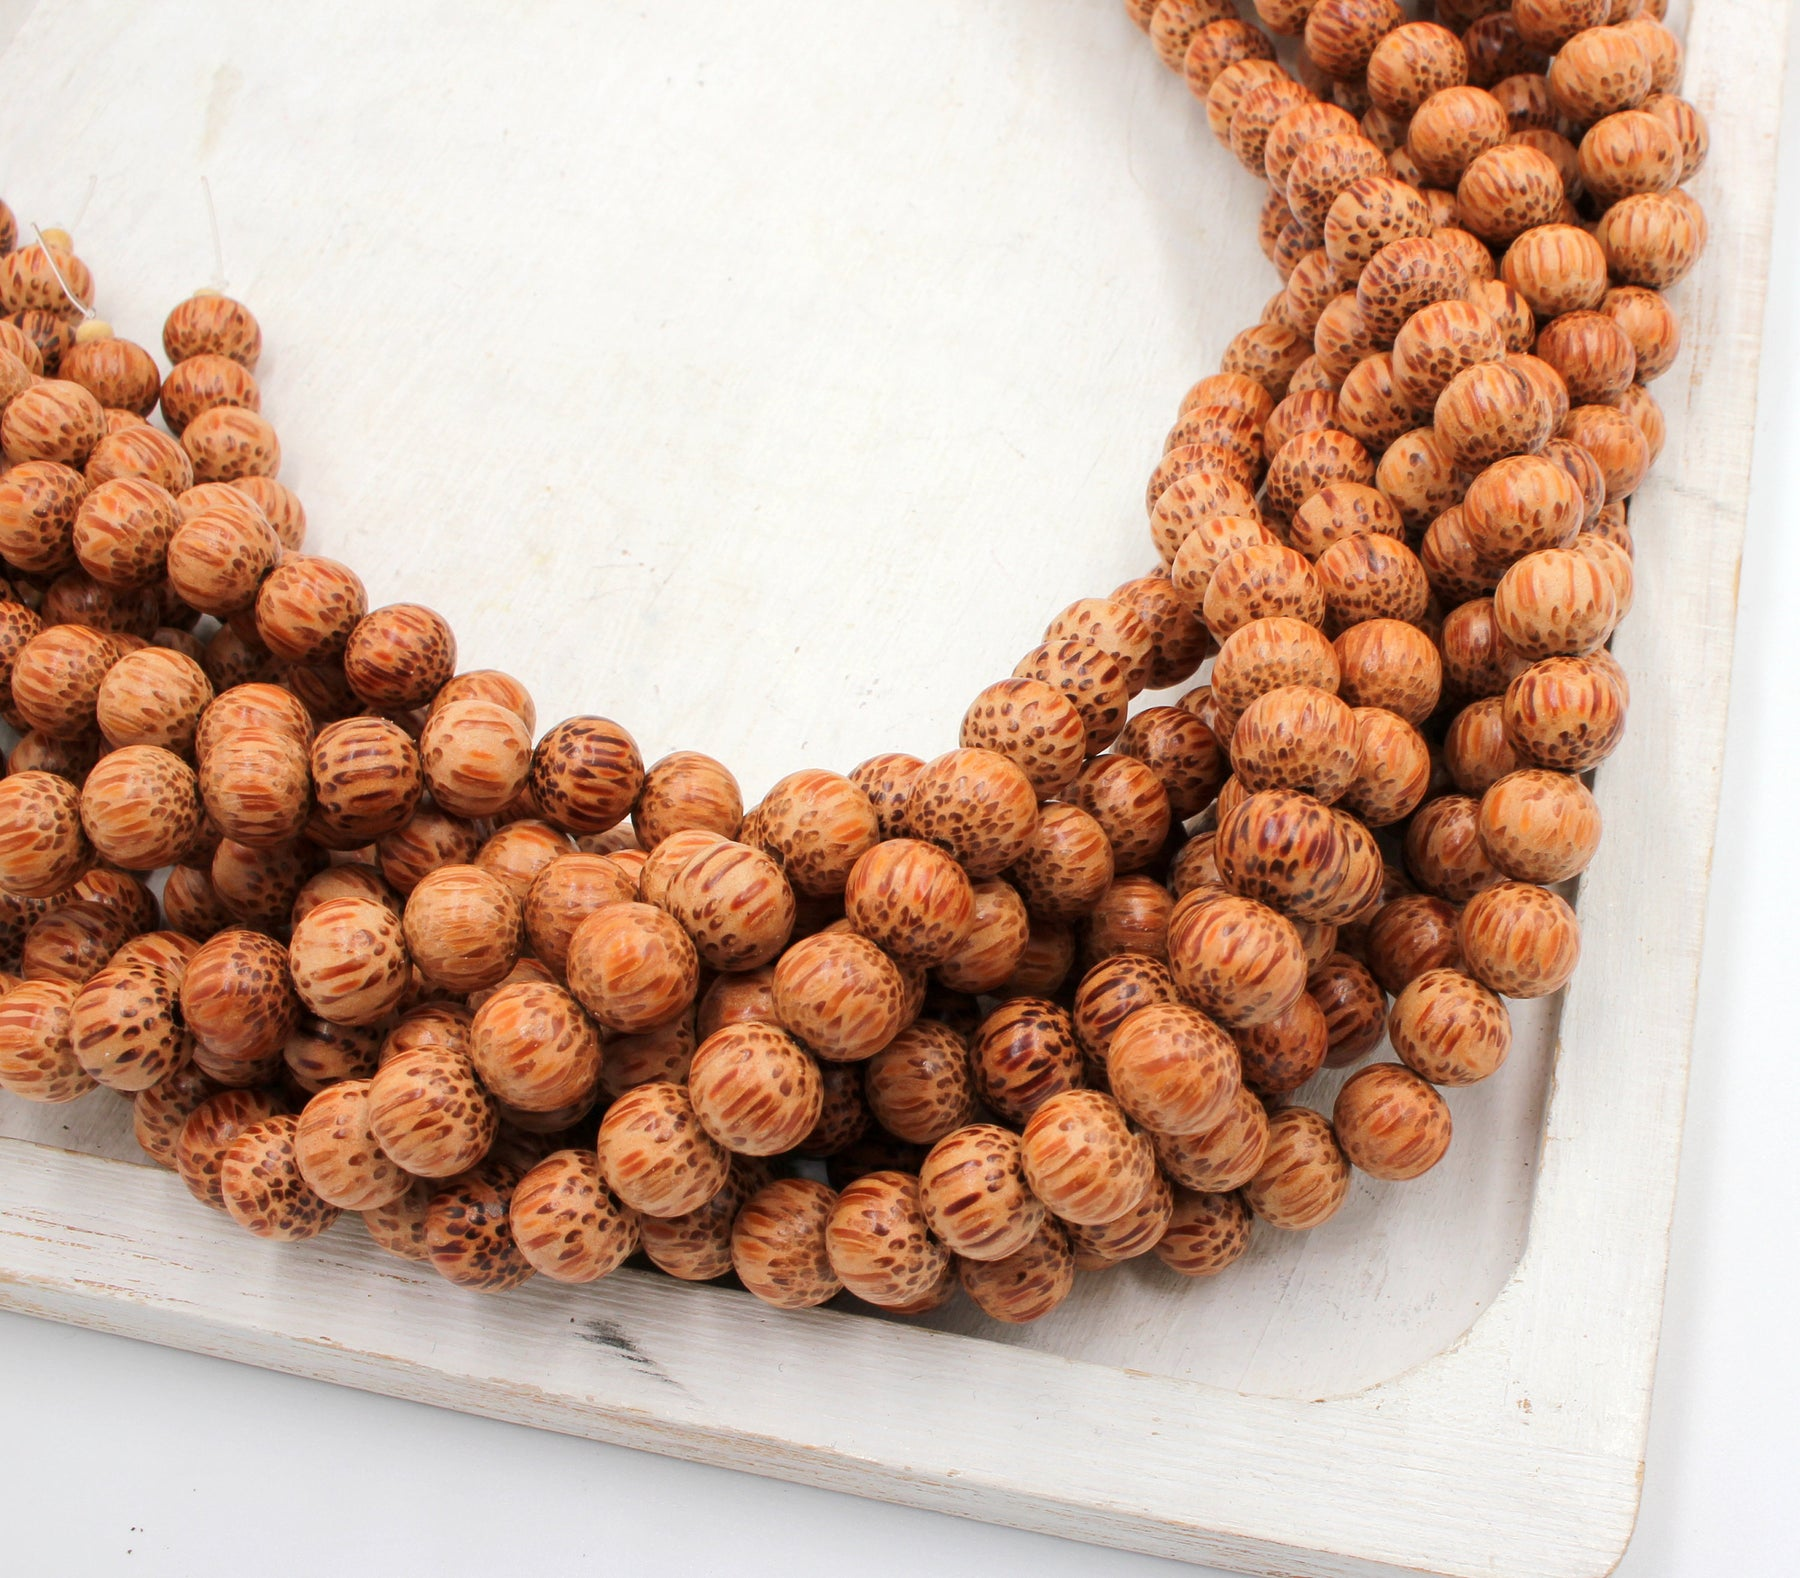 10mm palmwood beads, natural palmwood, beading supplies, jewelry supplies, essential oil beads, wood beads, diffuser beads,